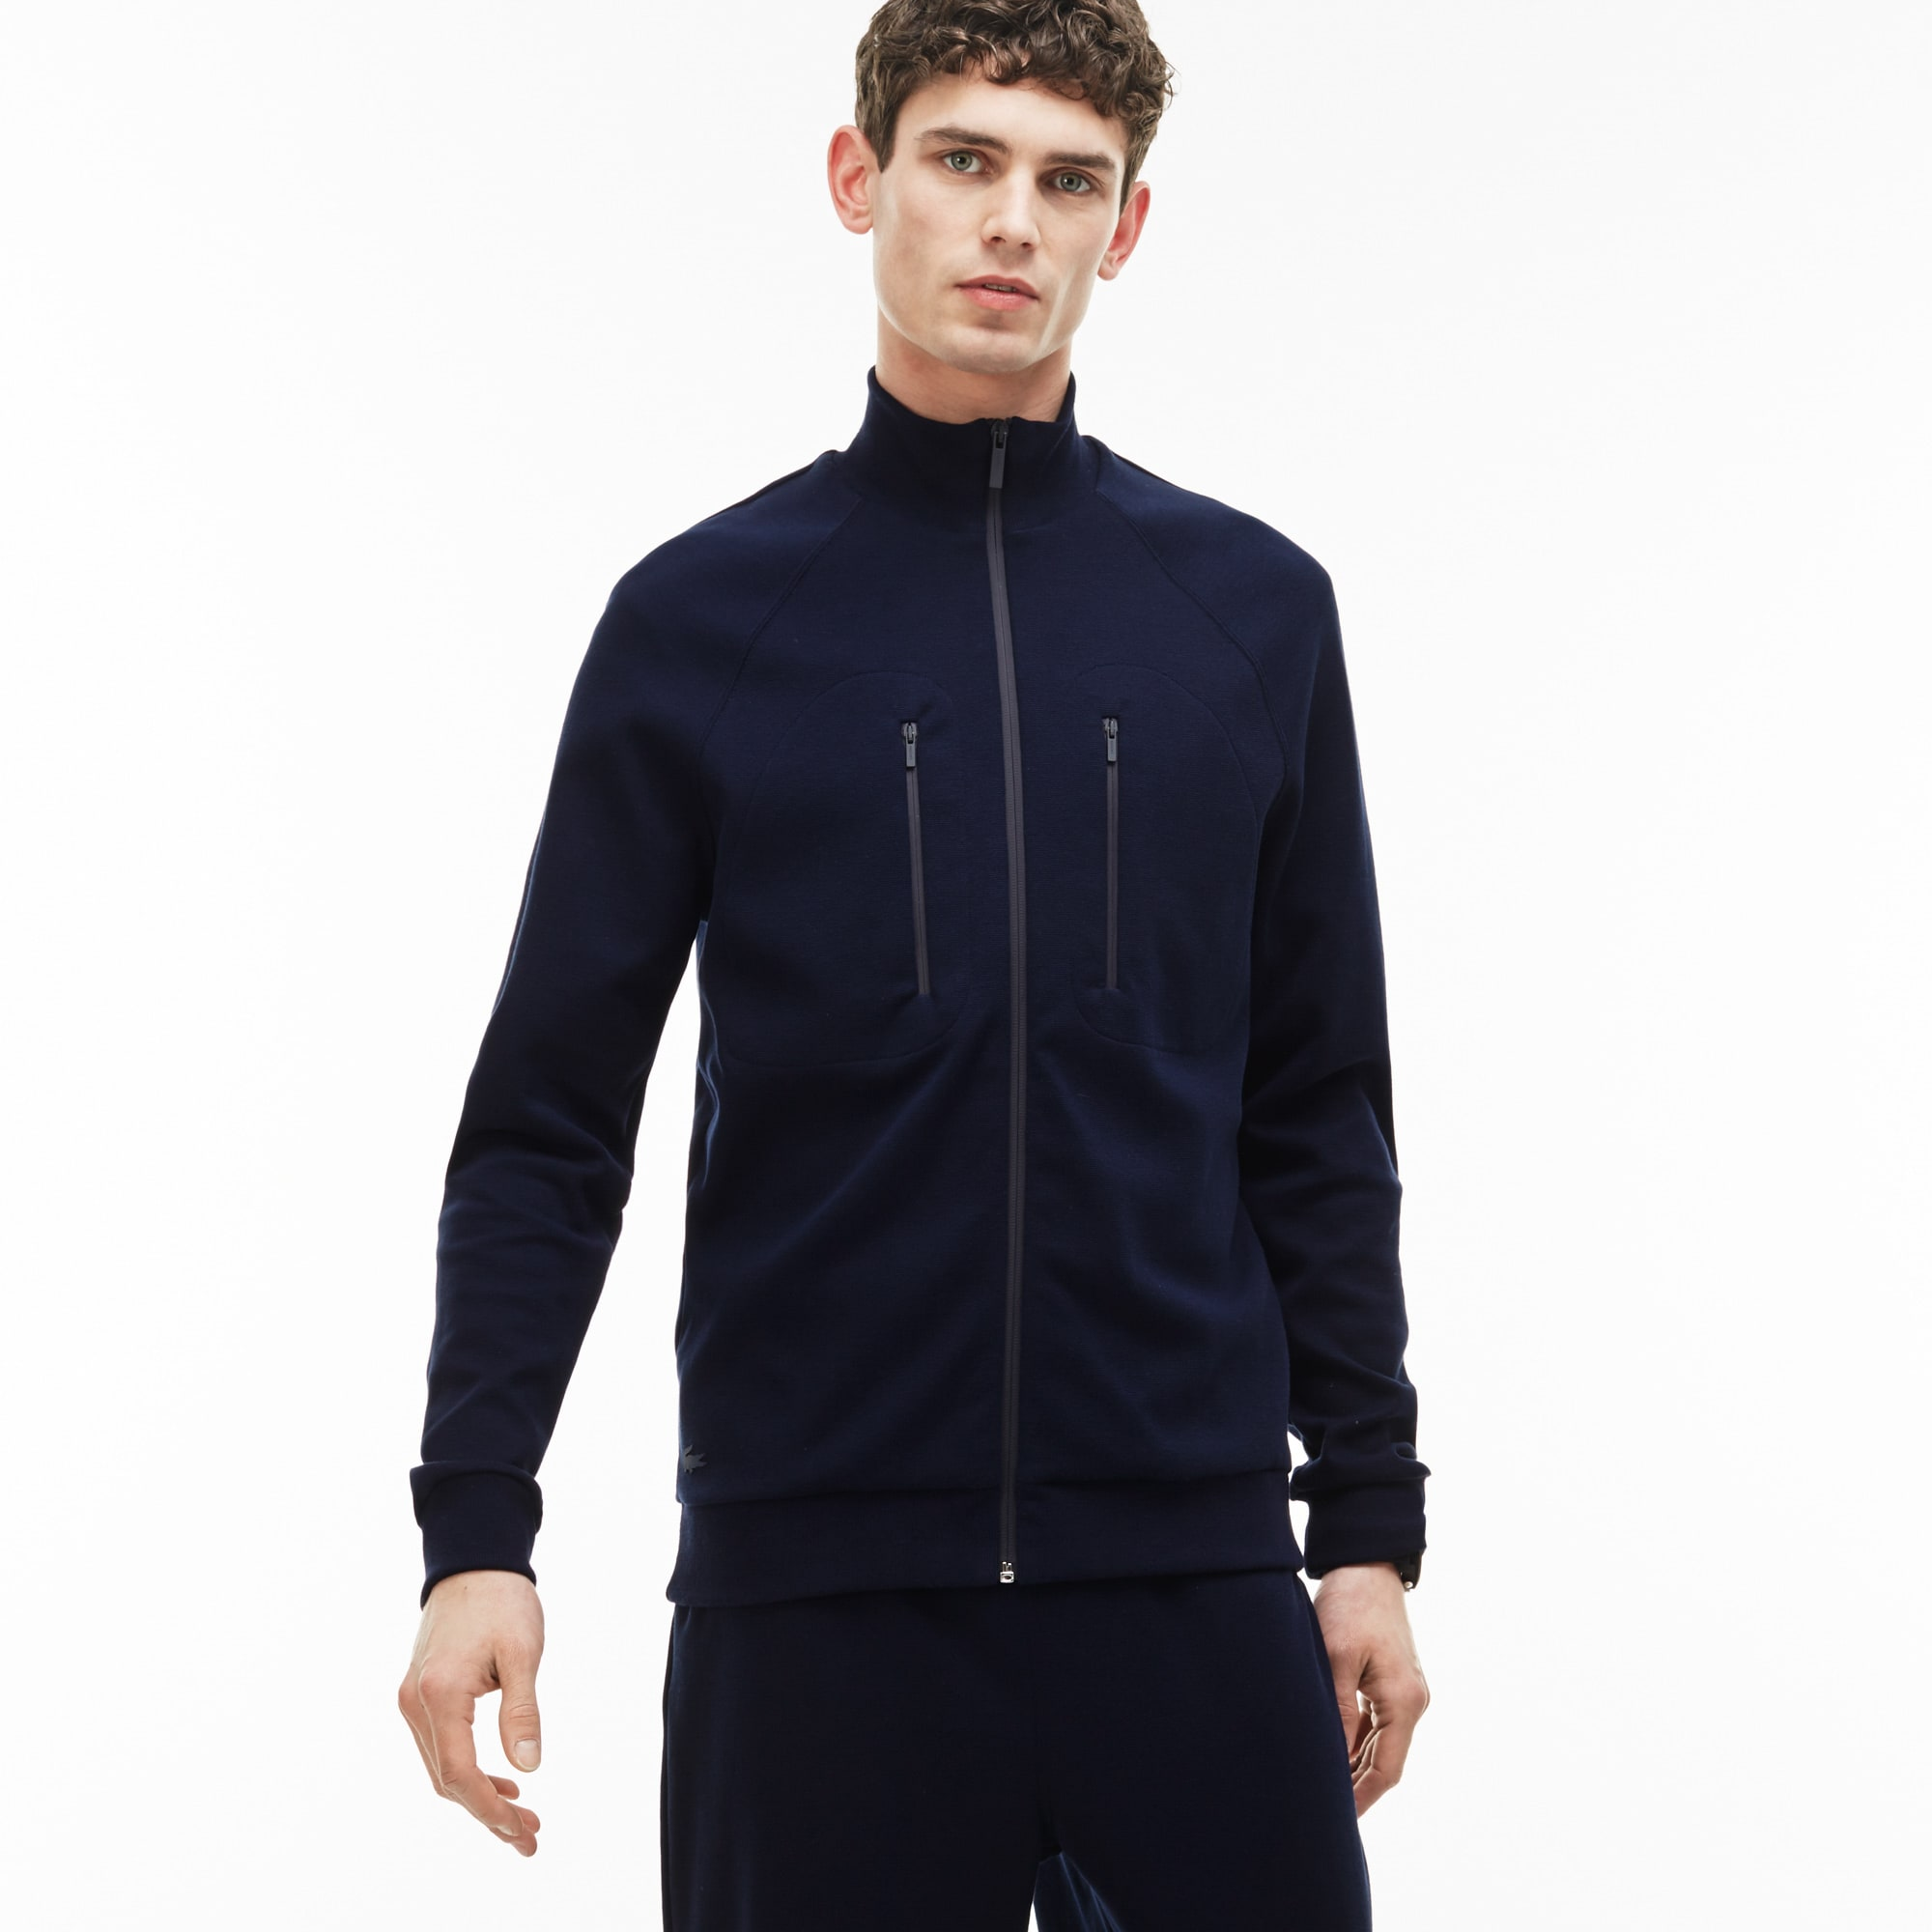 Men's Zip Stand-Up Collar Cotton Milano Knit Sweatshirt